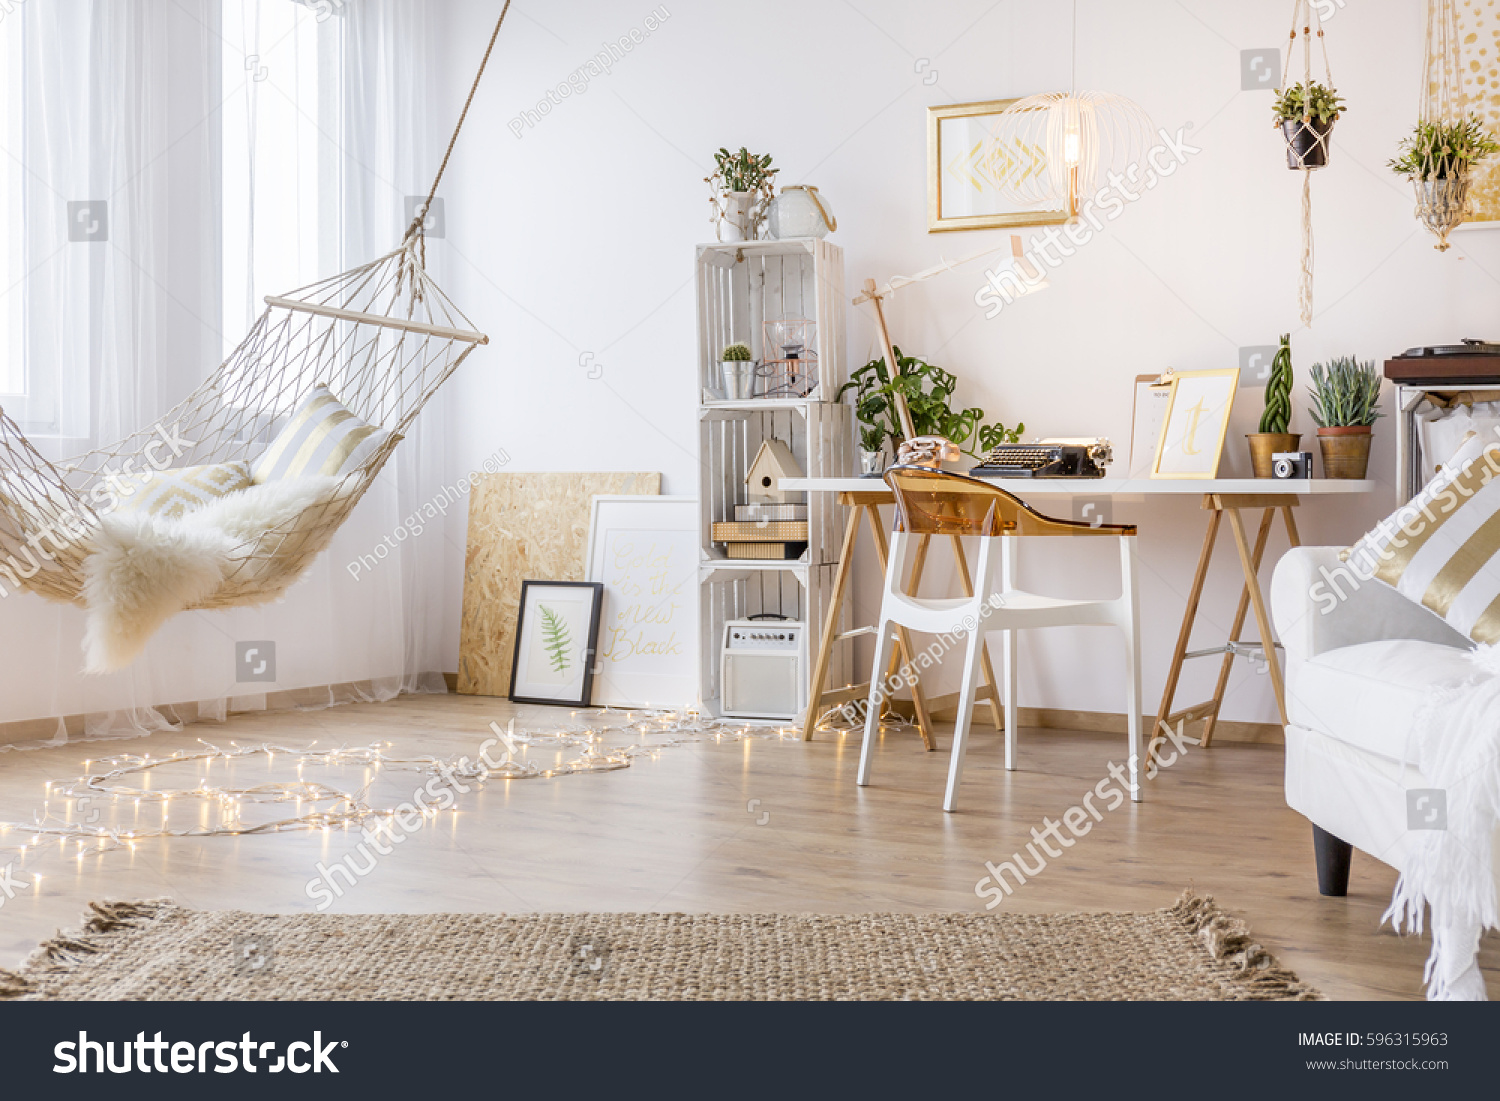 Cozy Working Place White Room Hammock Stock Photo & Image (Royalty ...